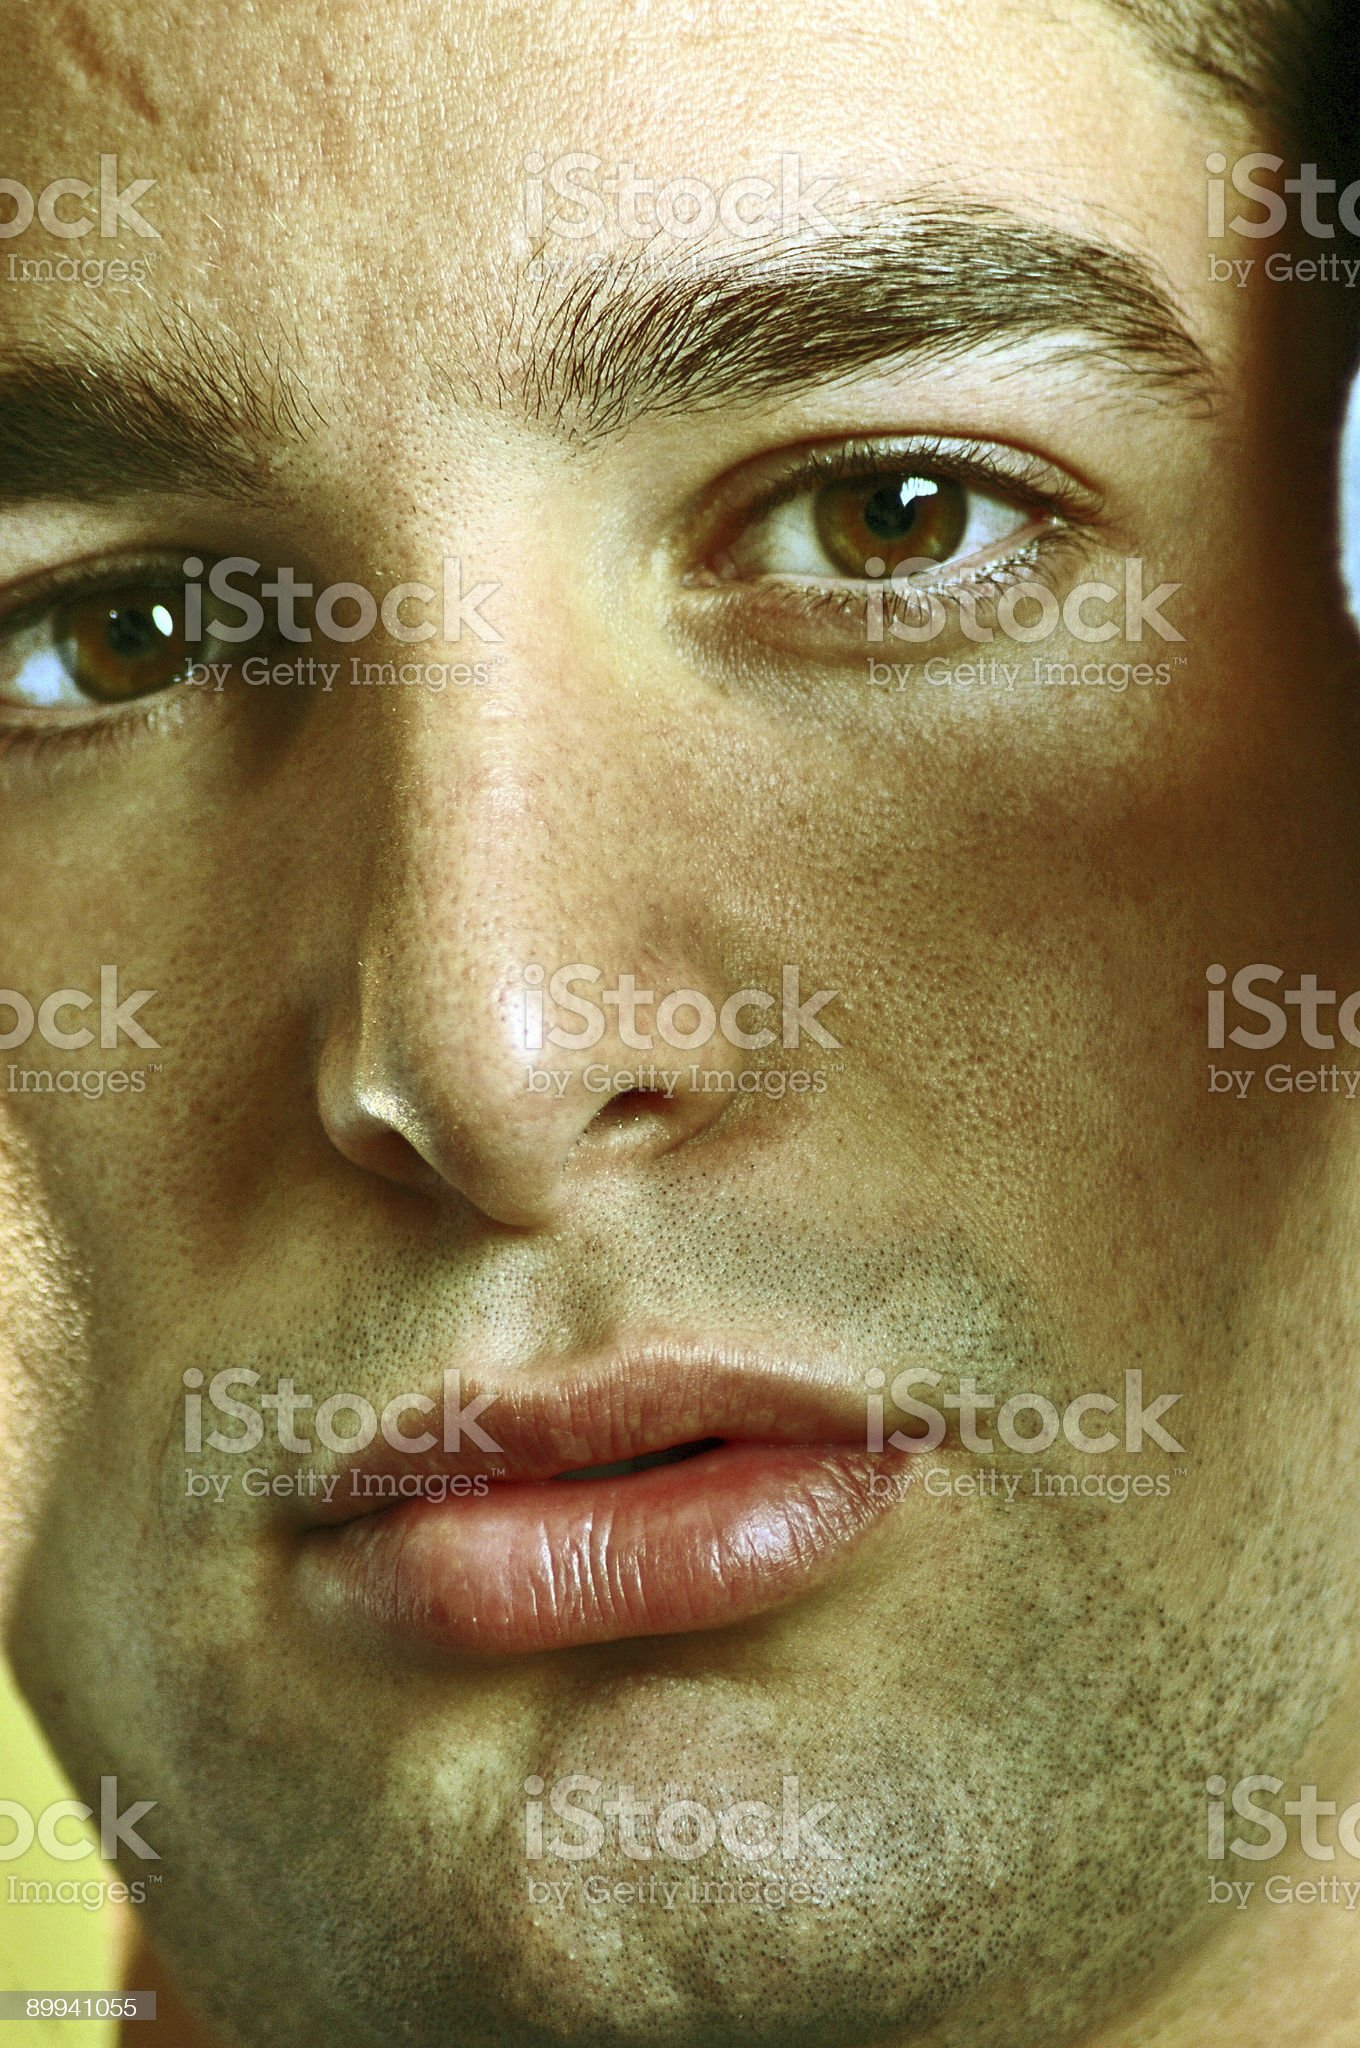 Brown eyes royalty-free stock photo